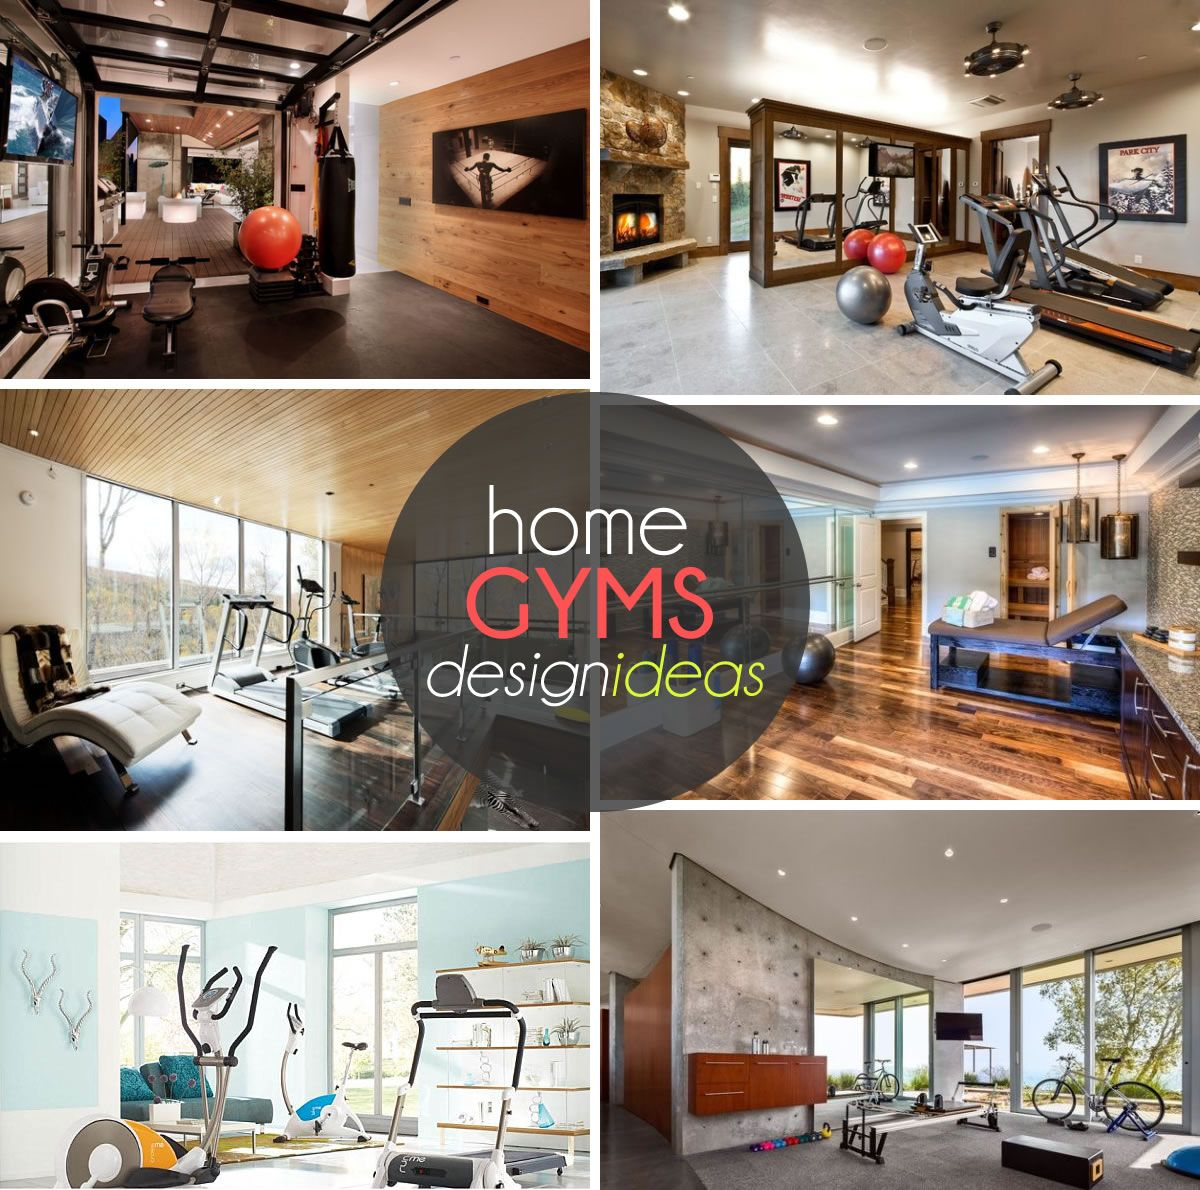 Home Gym Design Ideas Basement: Gym Interior, Fitness Design And